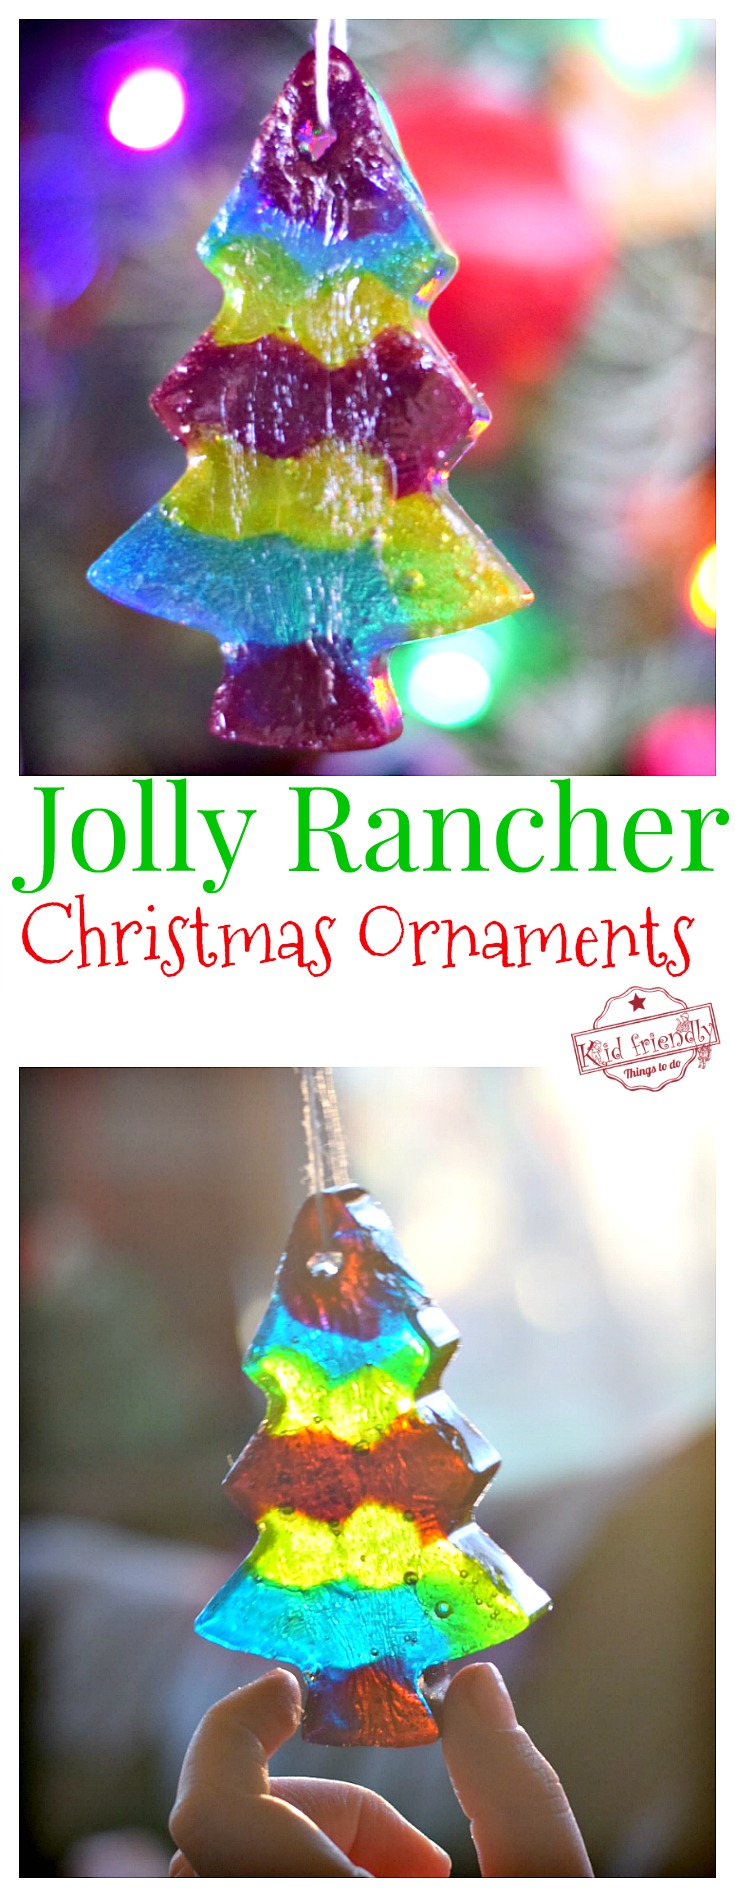 how to make a jolly rancher push pop